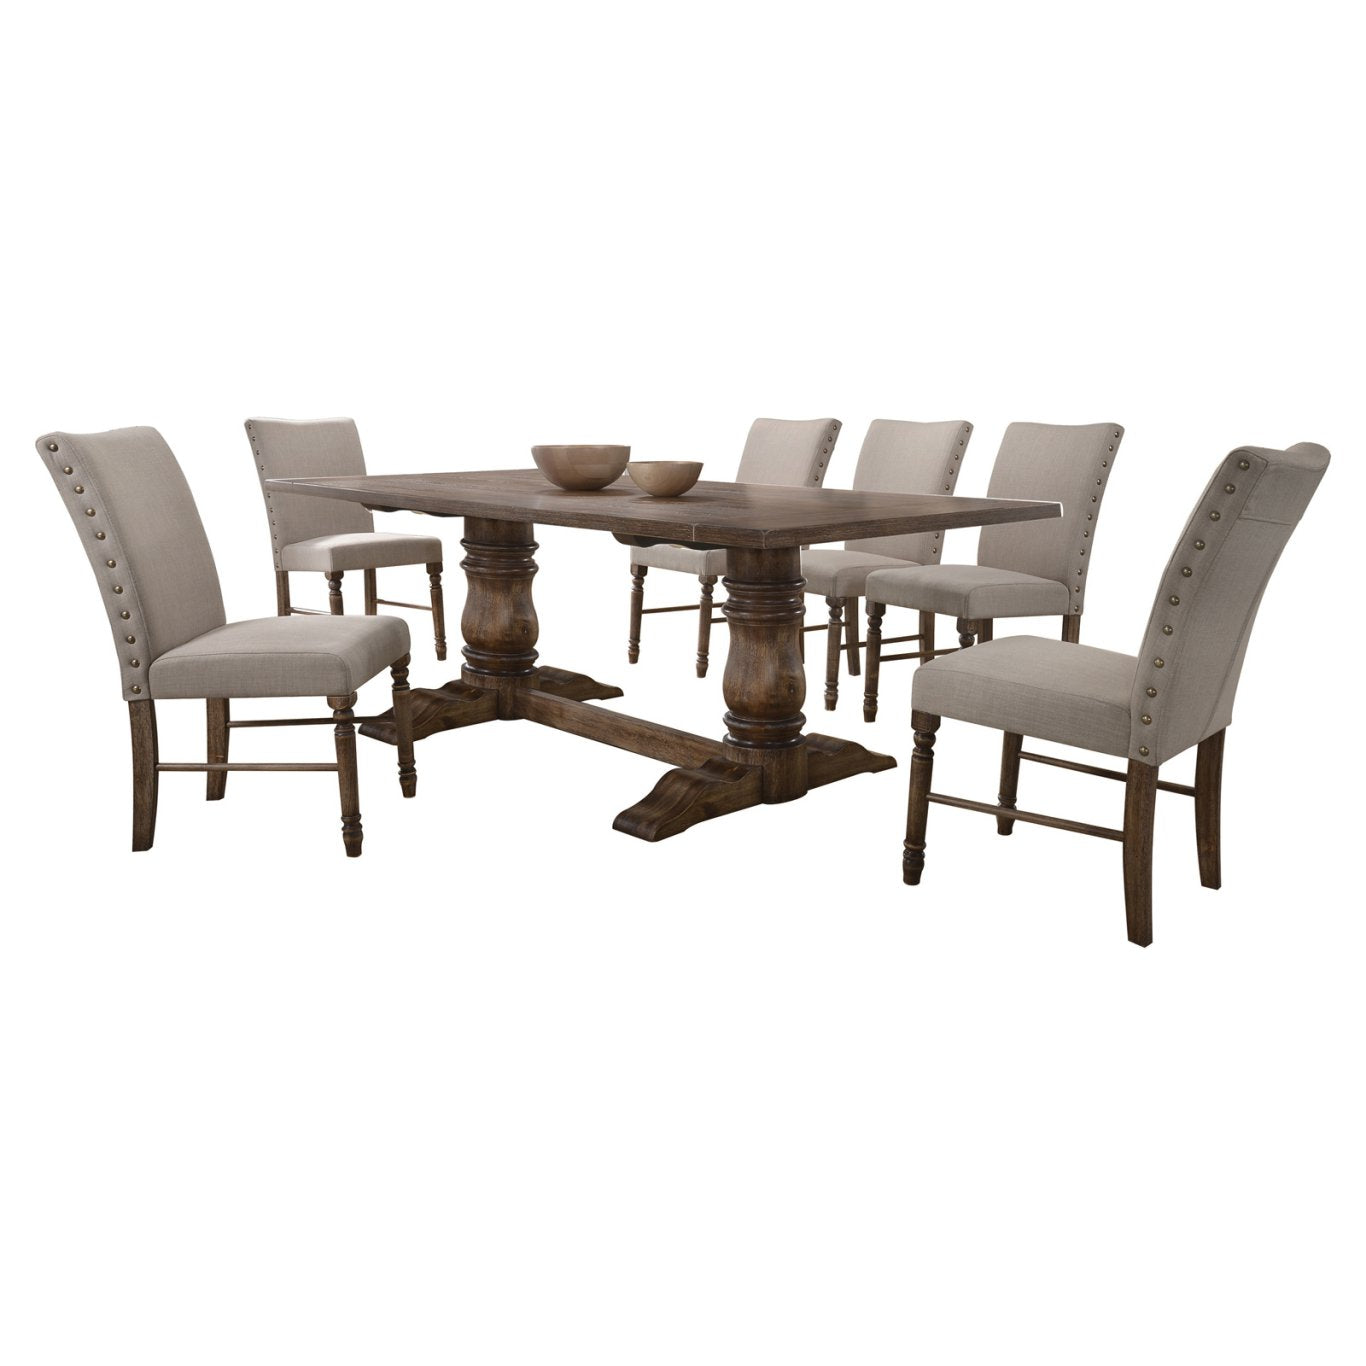 Acme 74655 Leventis Oak And Cream Wood Finish 9 Piece Dining Table Set